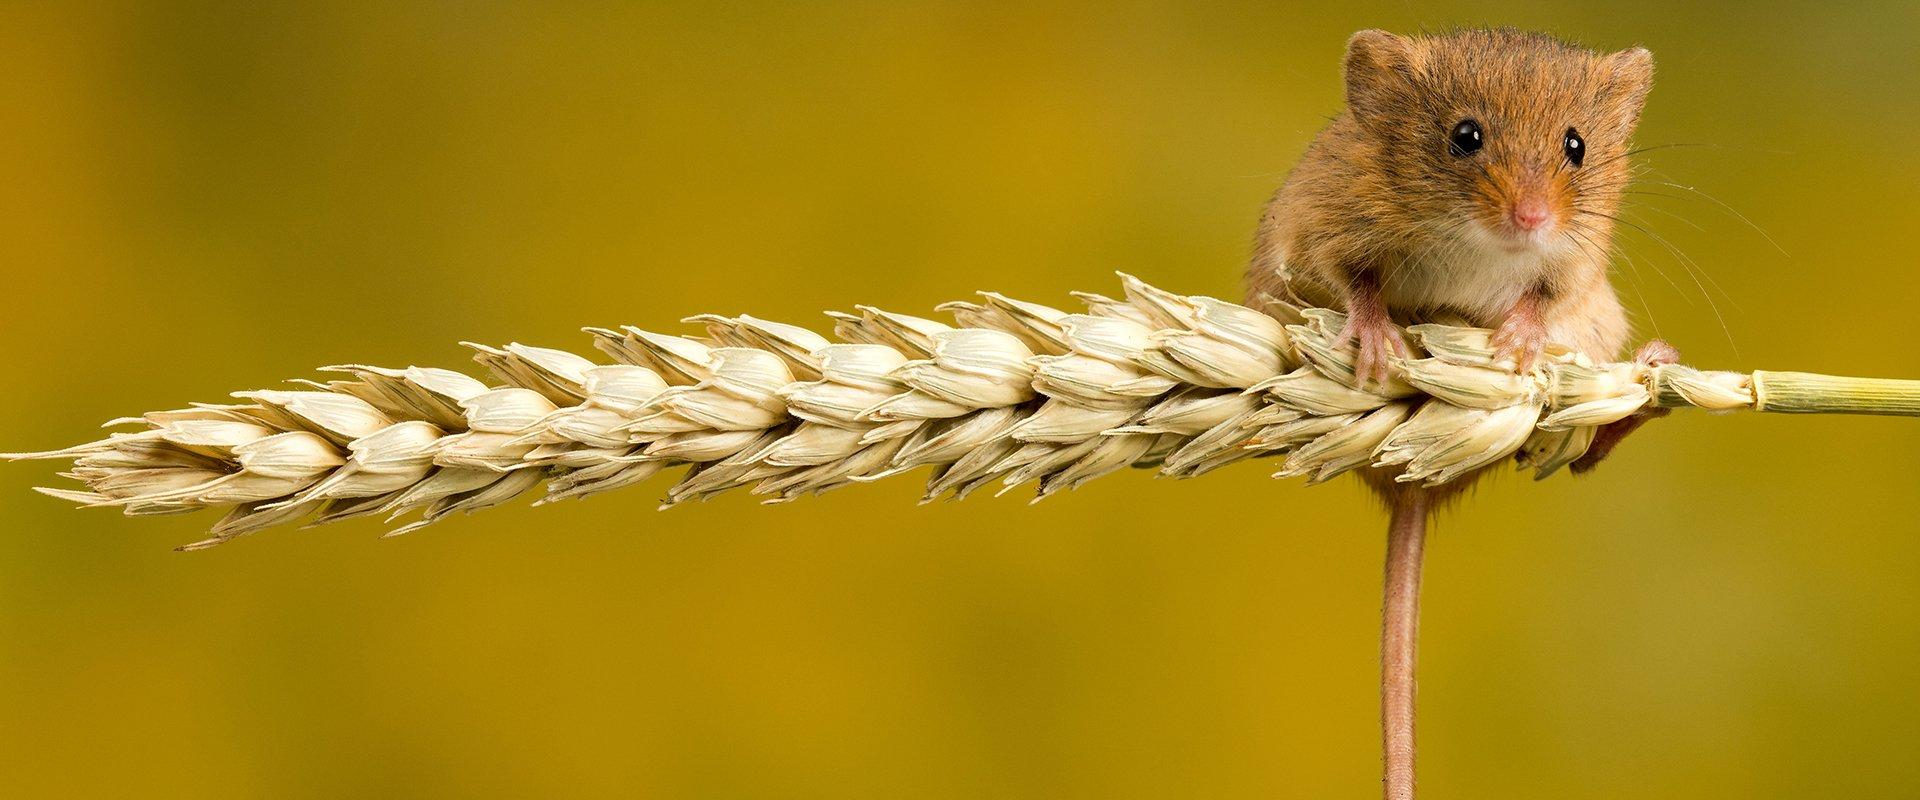 small rodent on a wheat strand